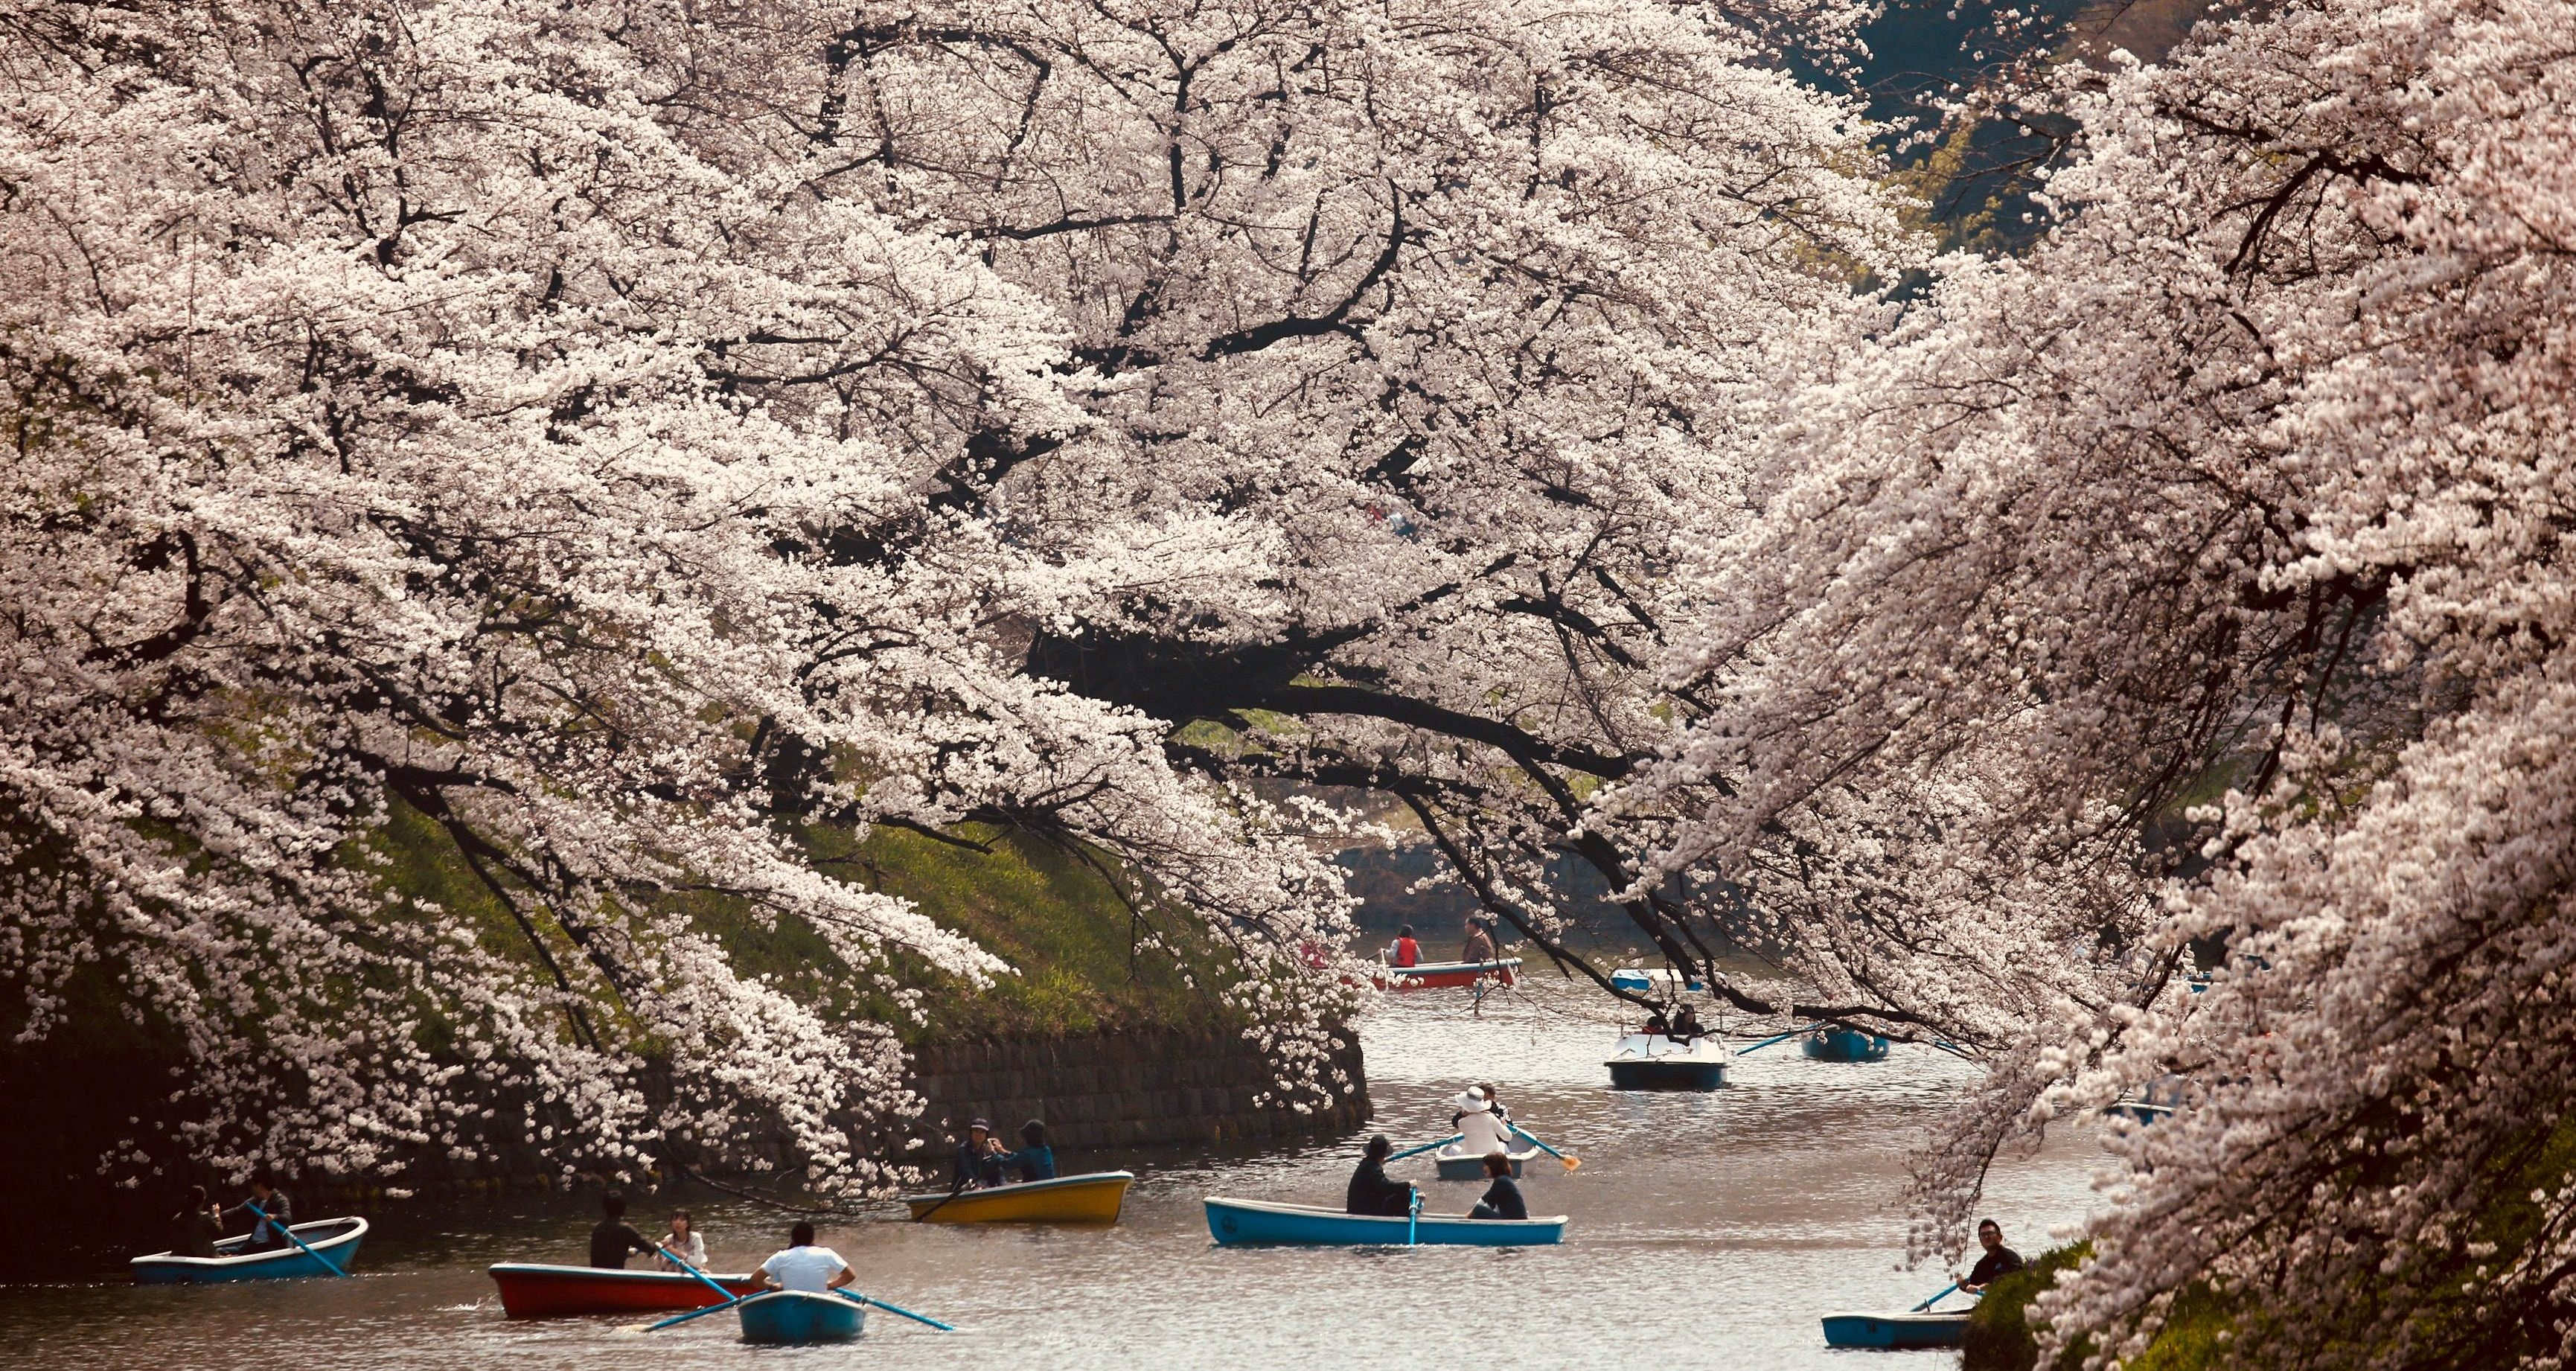 Japan's cherry blossoms blooming in fall after extreme